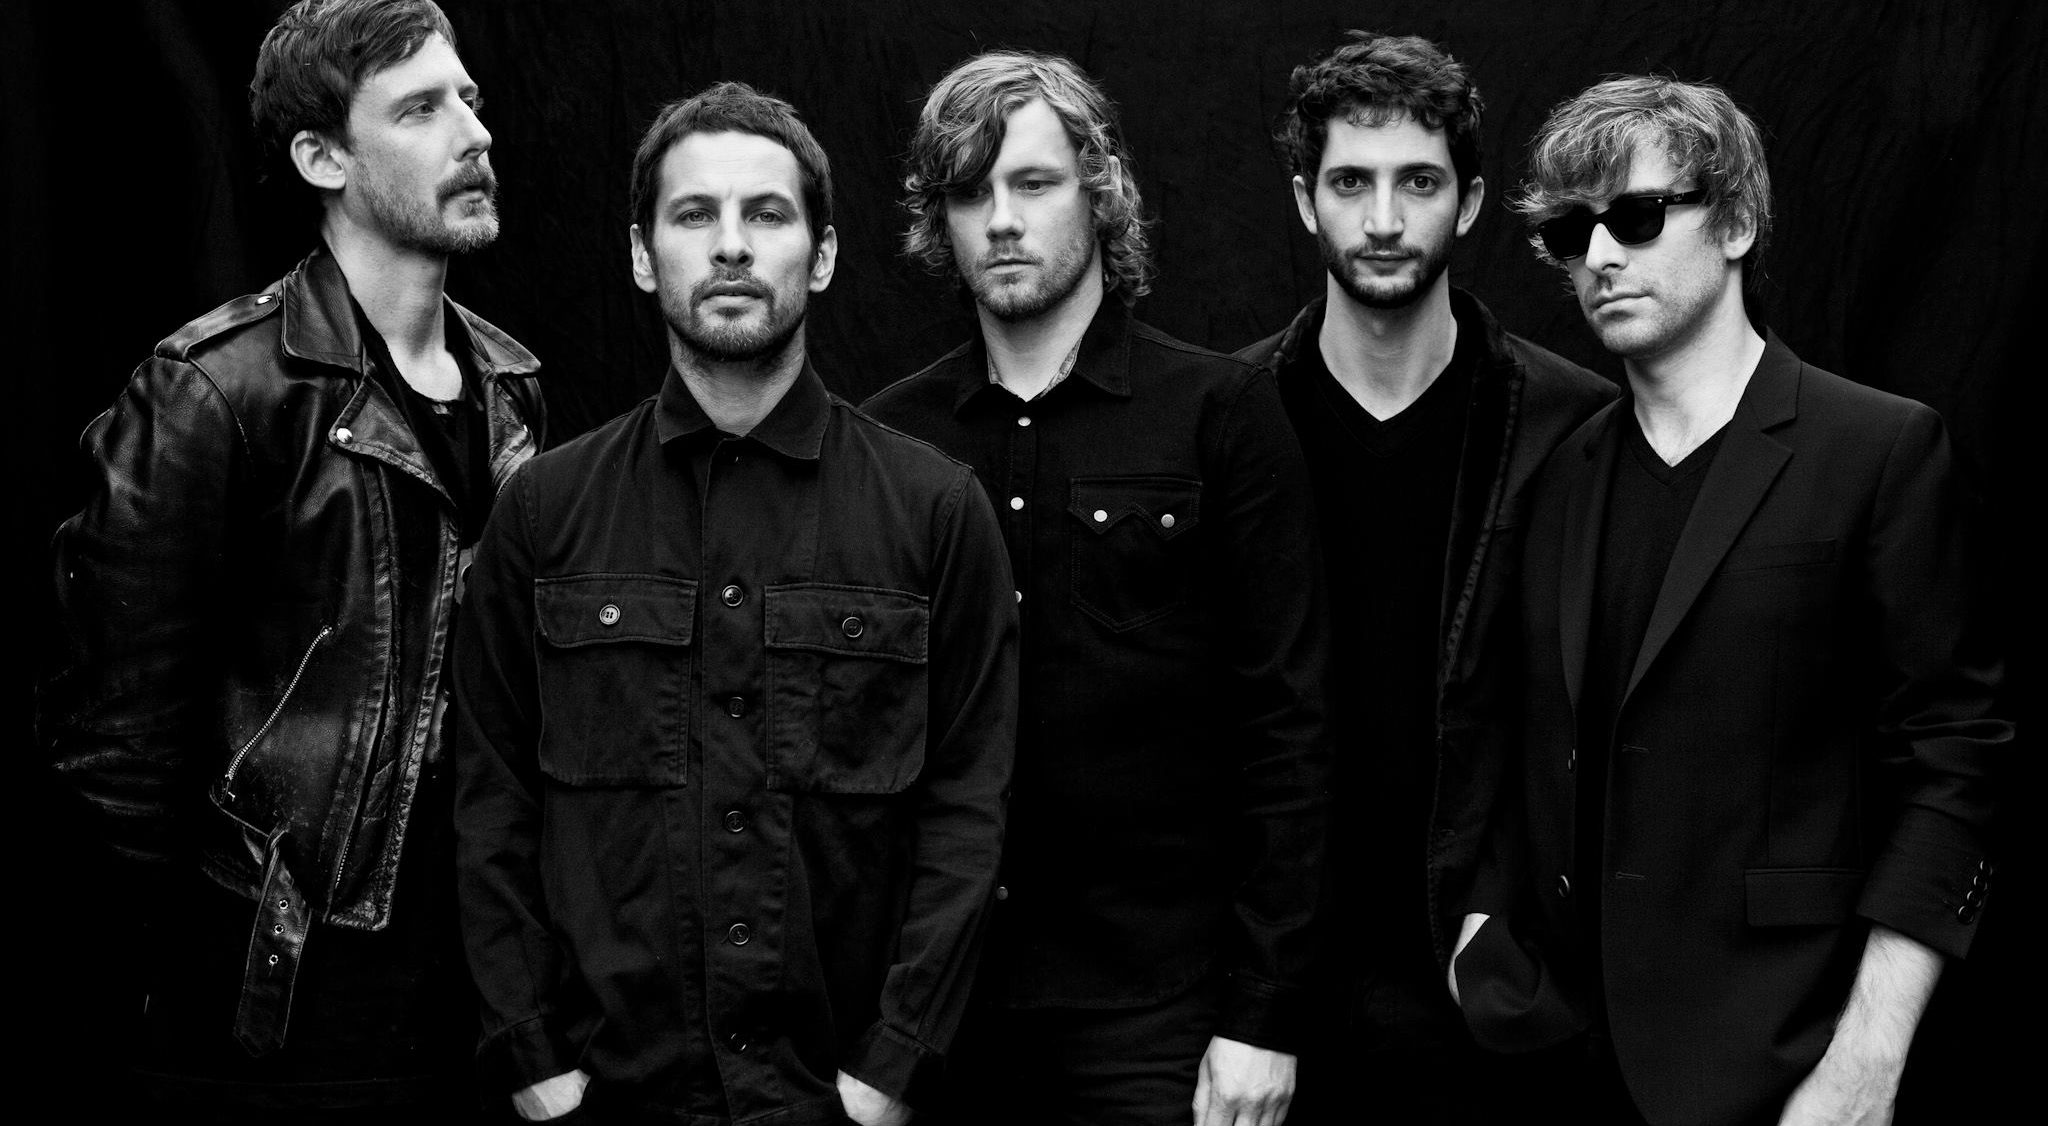 Sam Roberts Band added to Toronto's World Cup of Hockey music line up